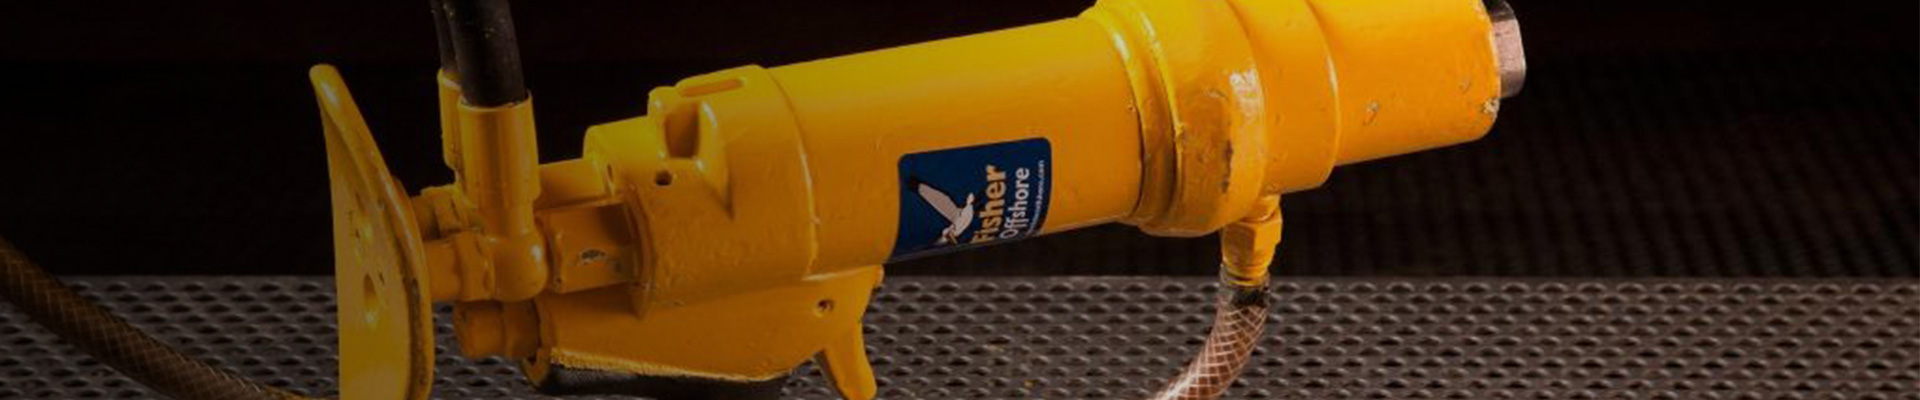 Subsea drill banner 1920x400.jpg